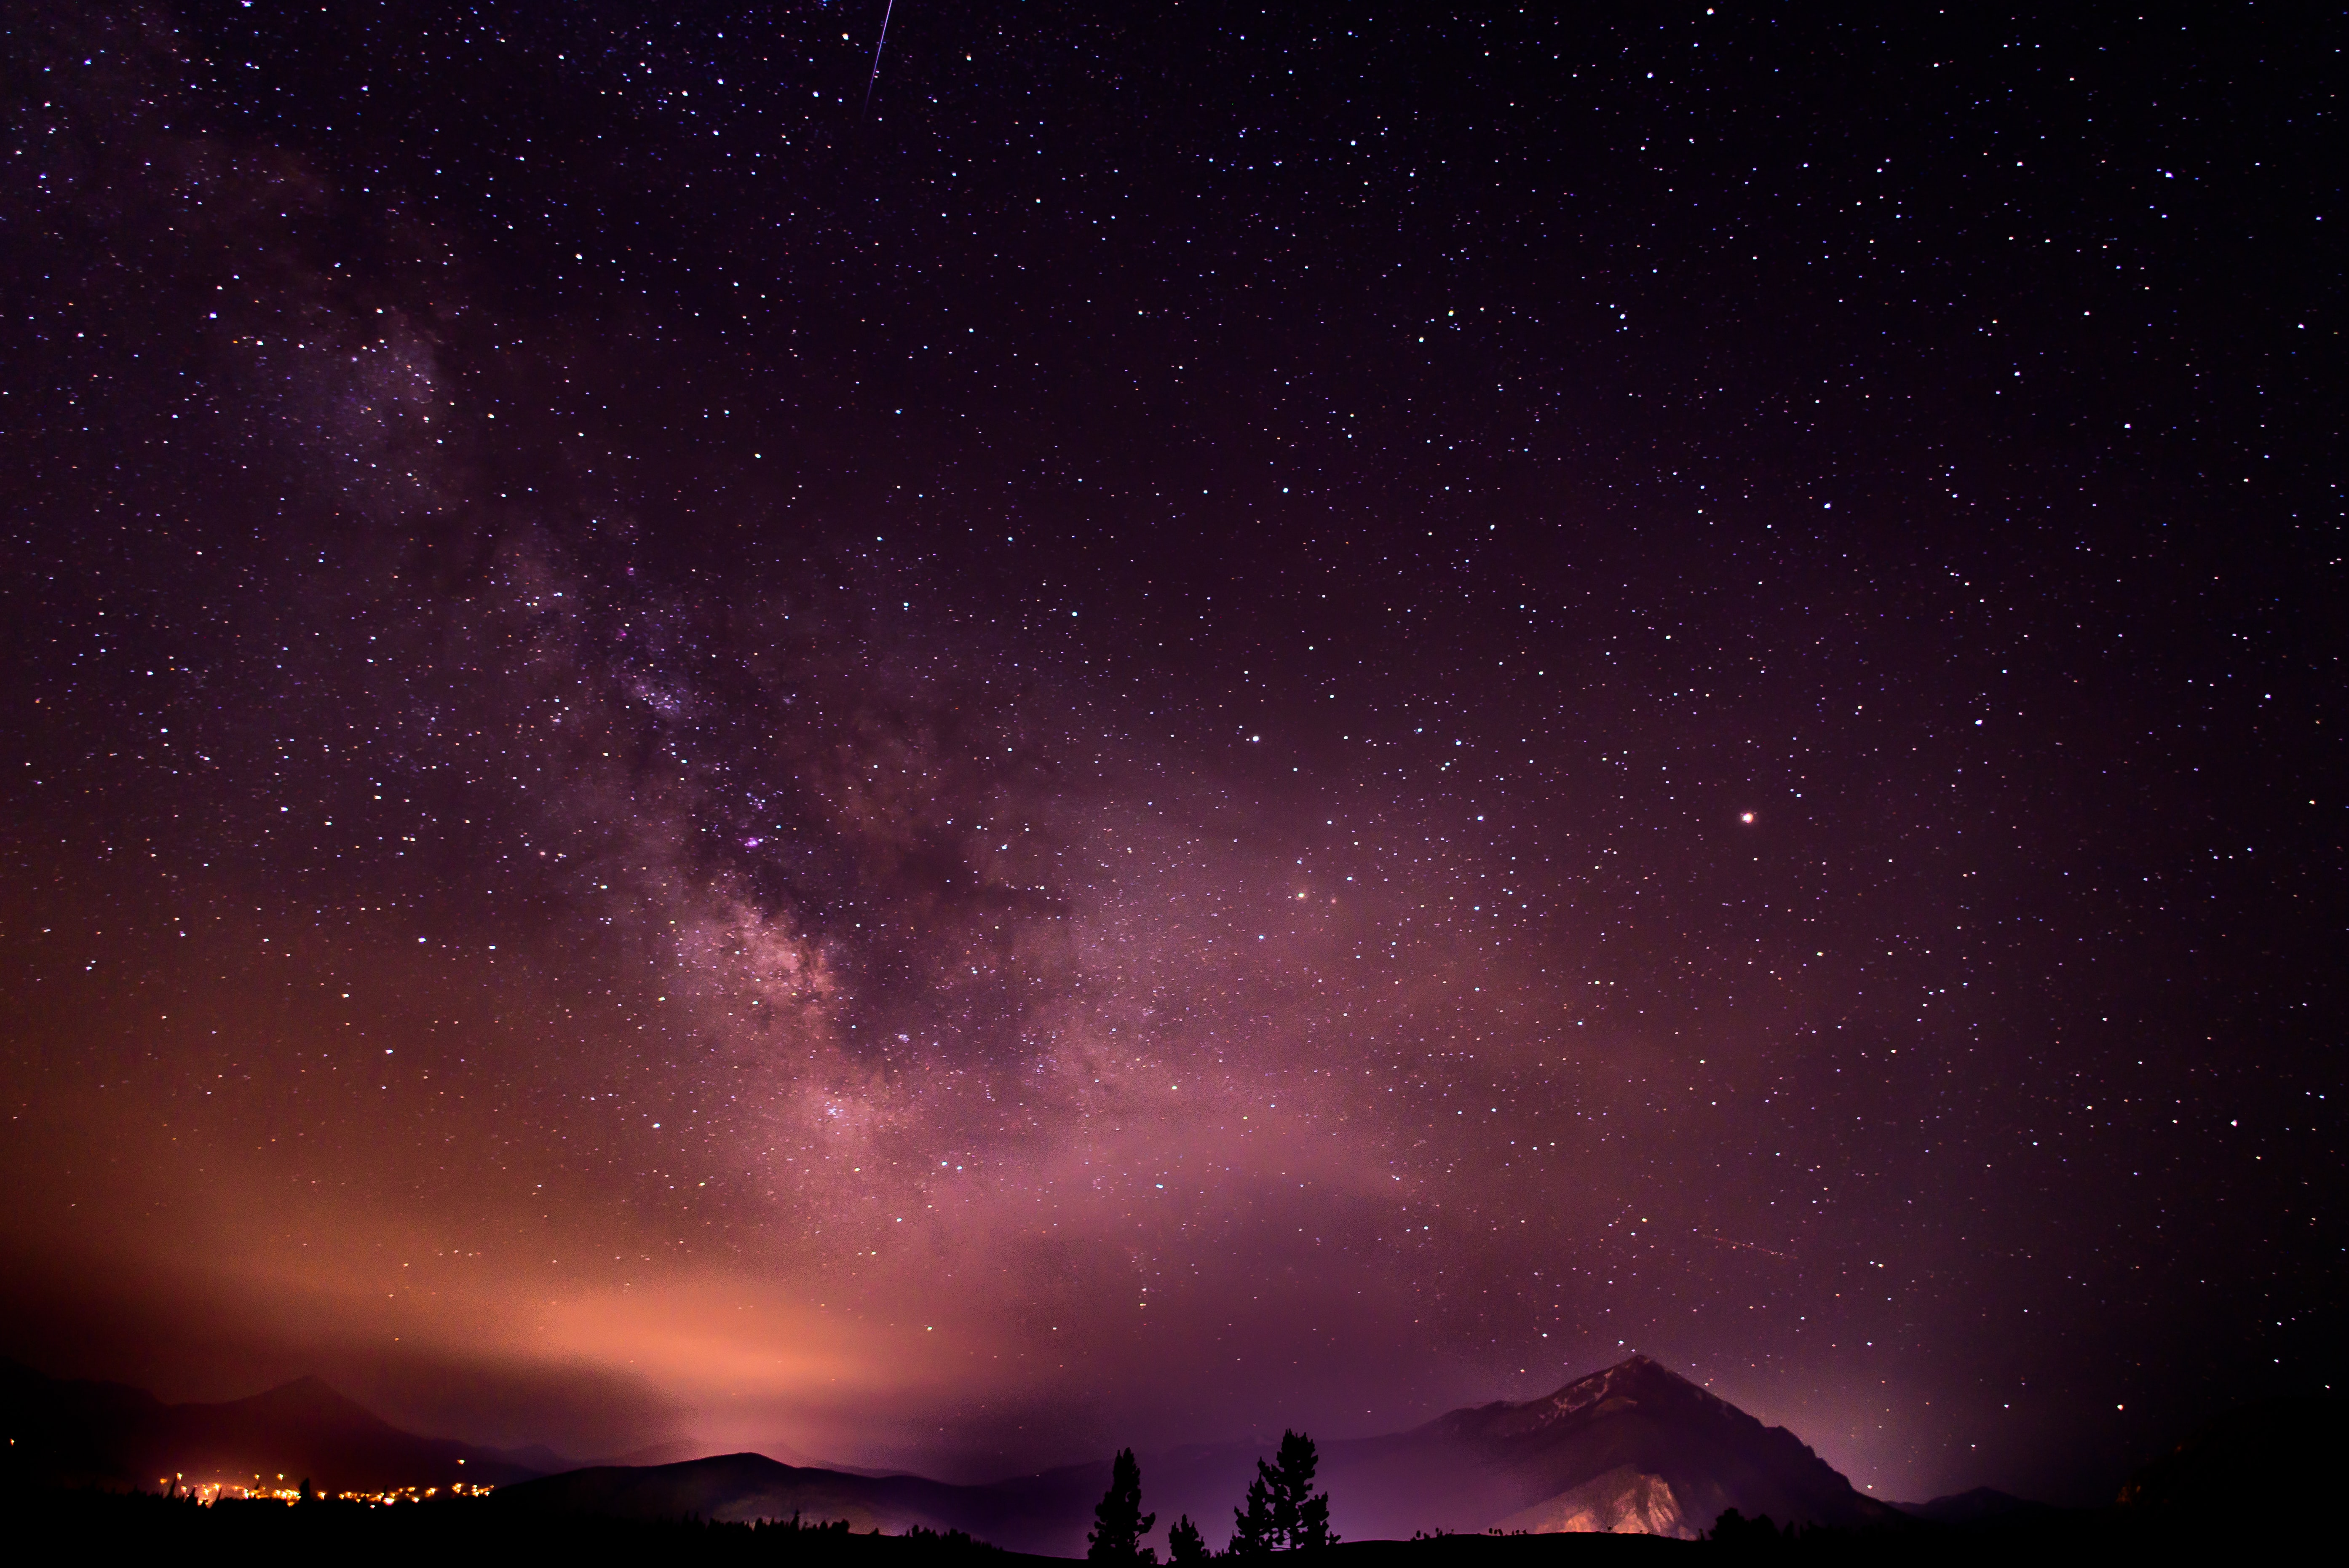 The Milky Way above the mountains in Silverthorne.